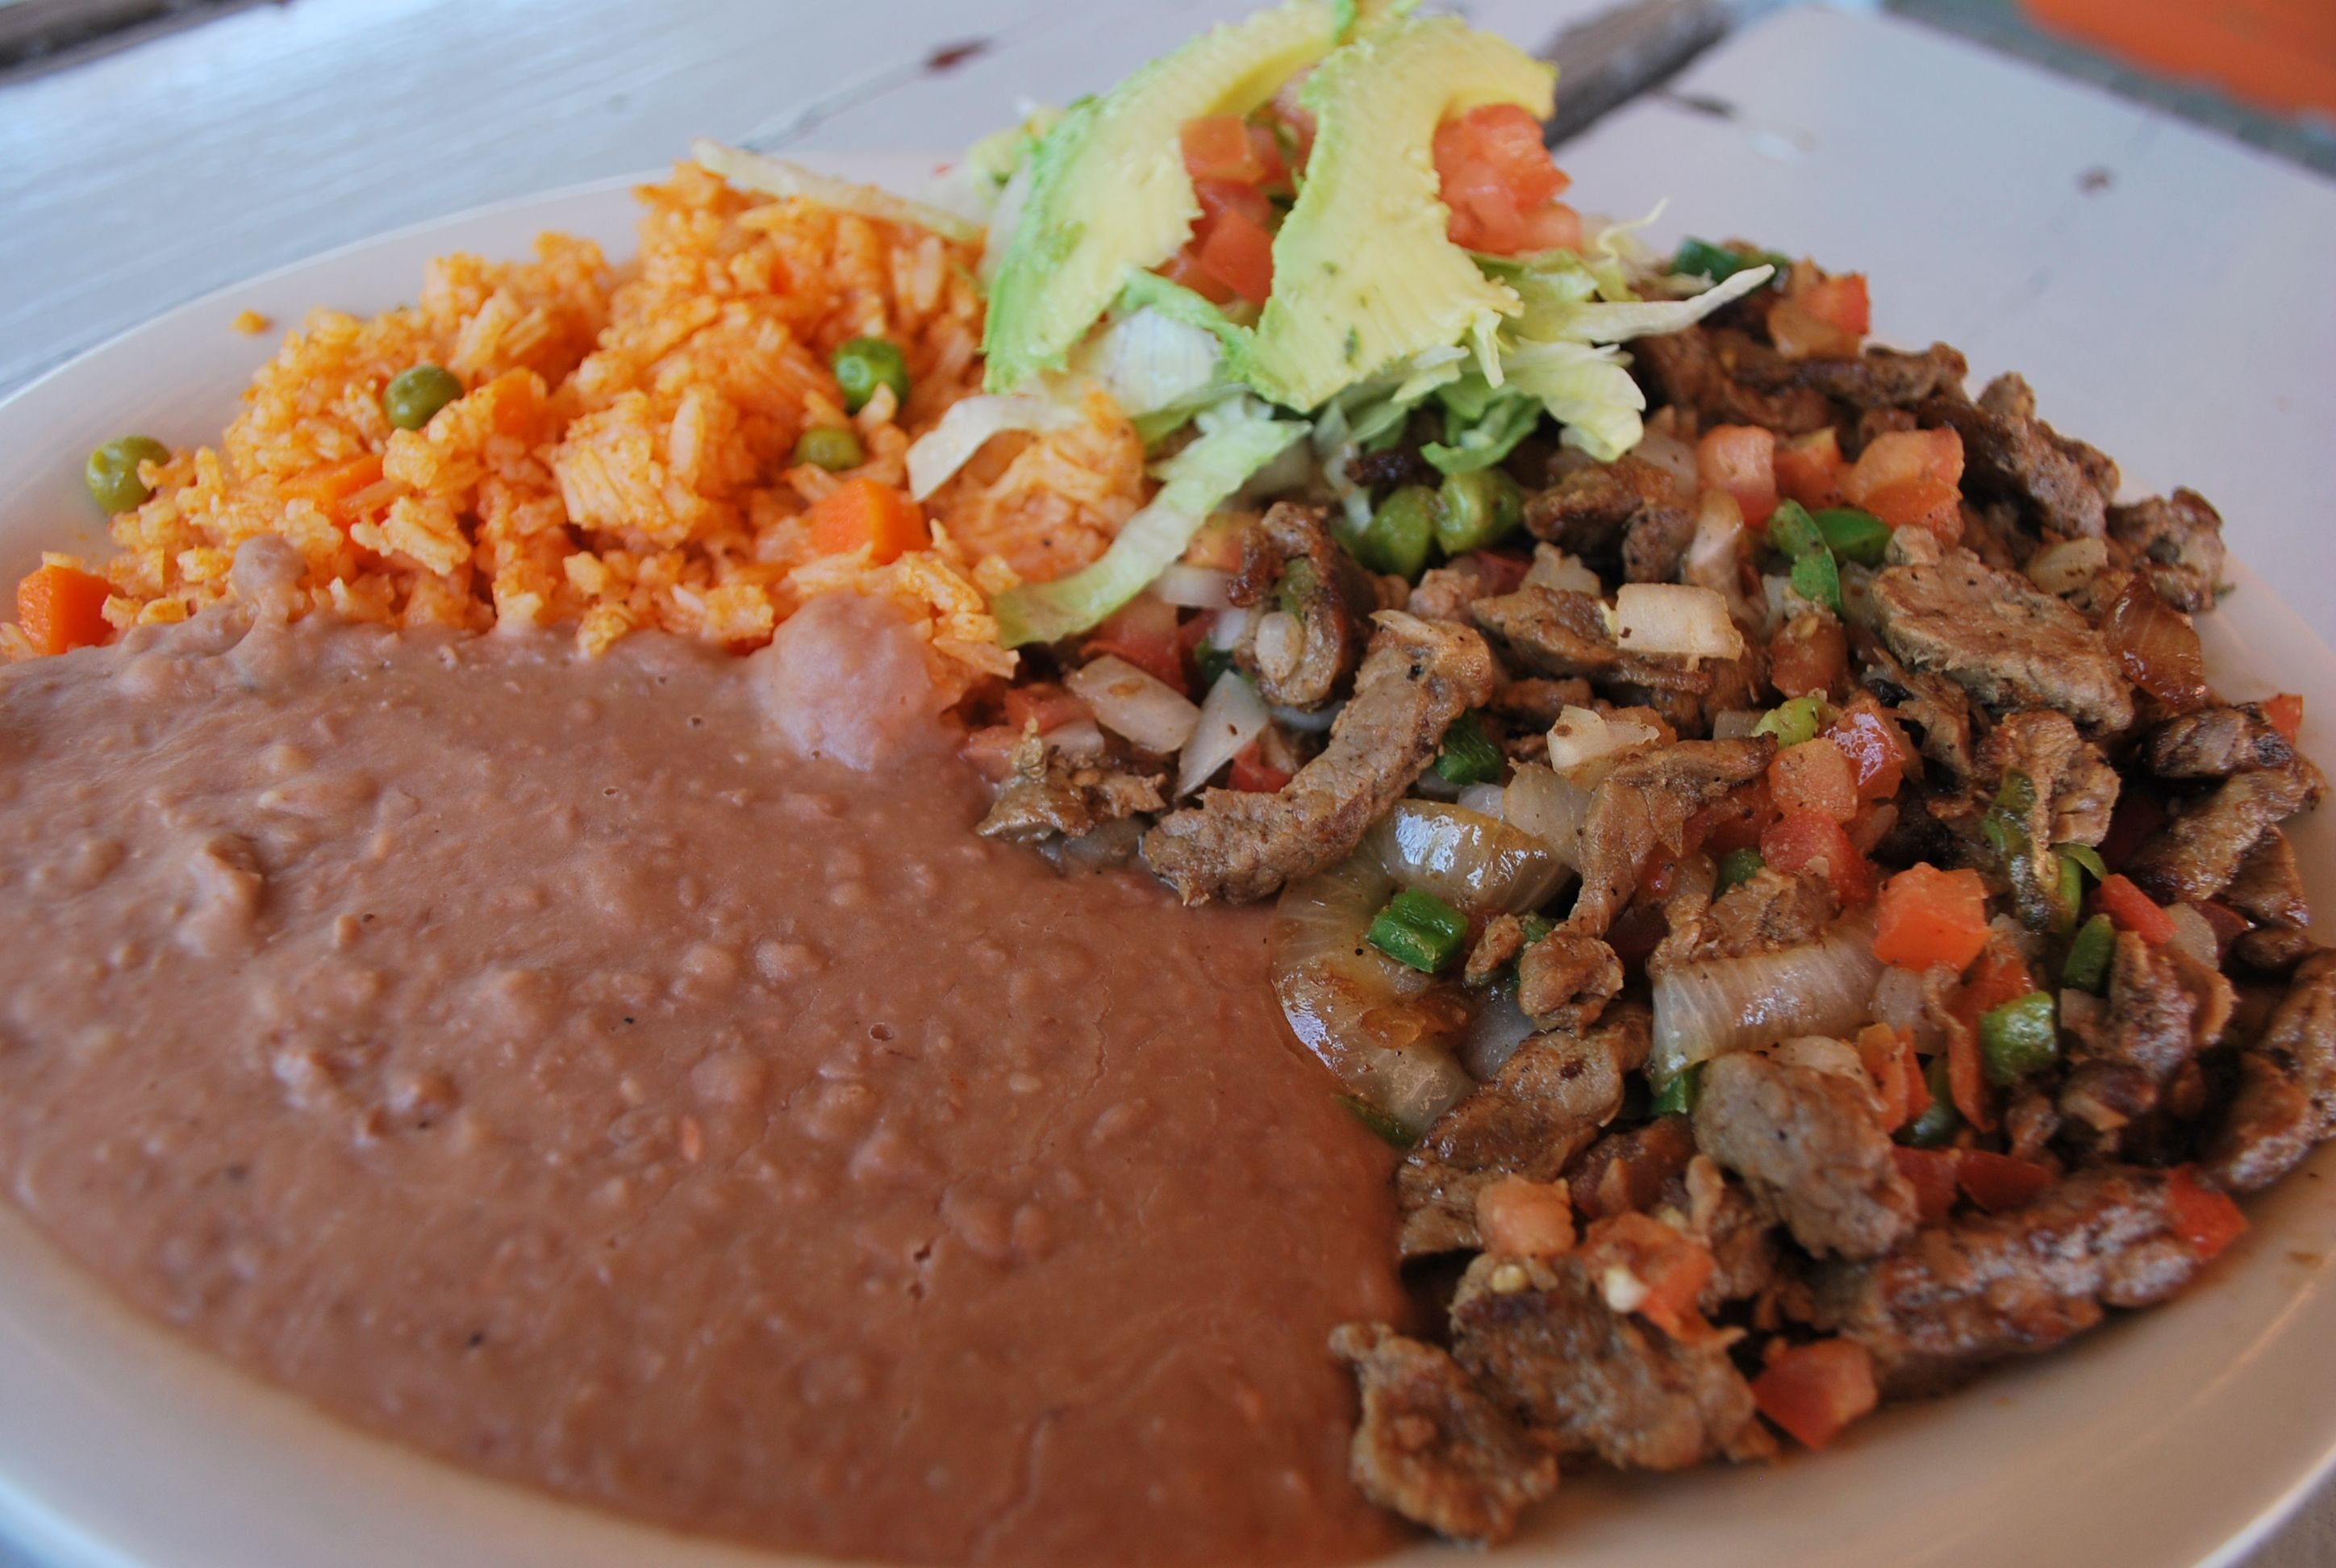 Today 39 s lunch suggestion our carne asada a la mexicana for Ideas para hacer de comer hoy